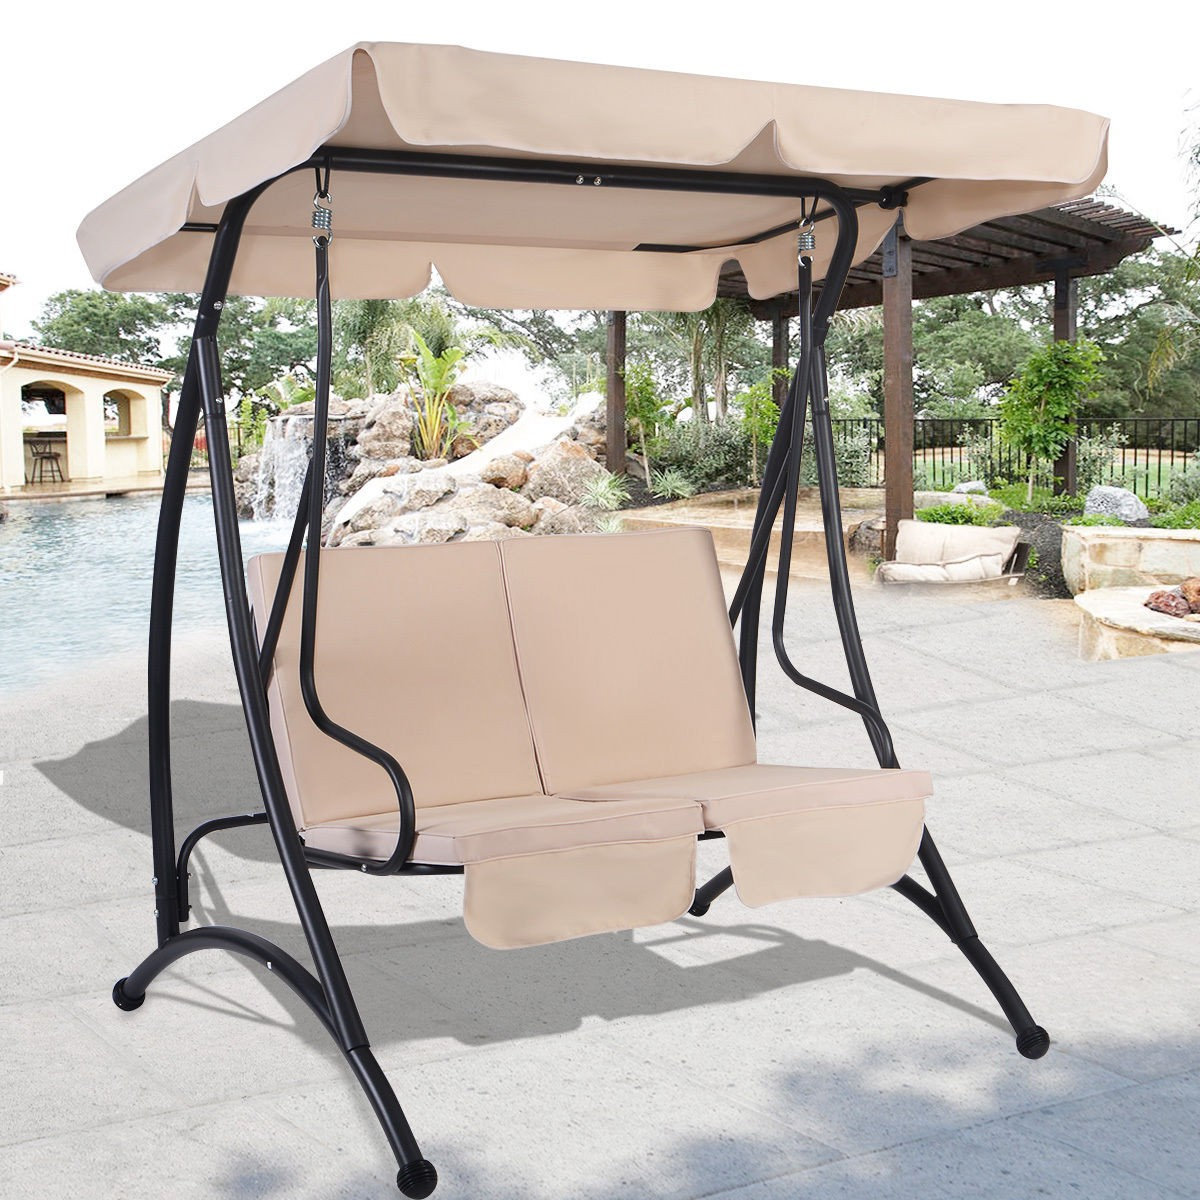 2 Person Canopy Swing Chair Patio Hammock Seat Cushioned Furniture Outdoor US